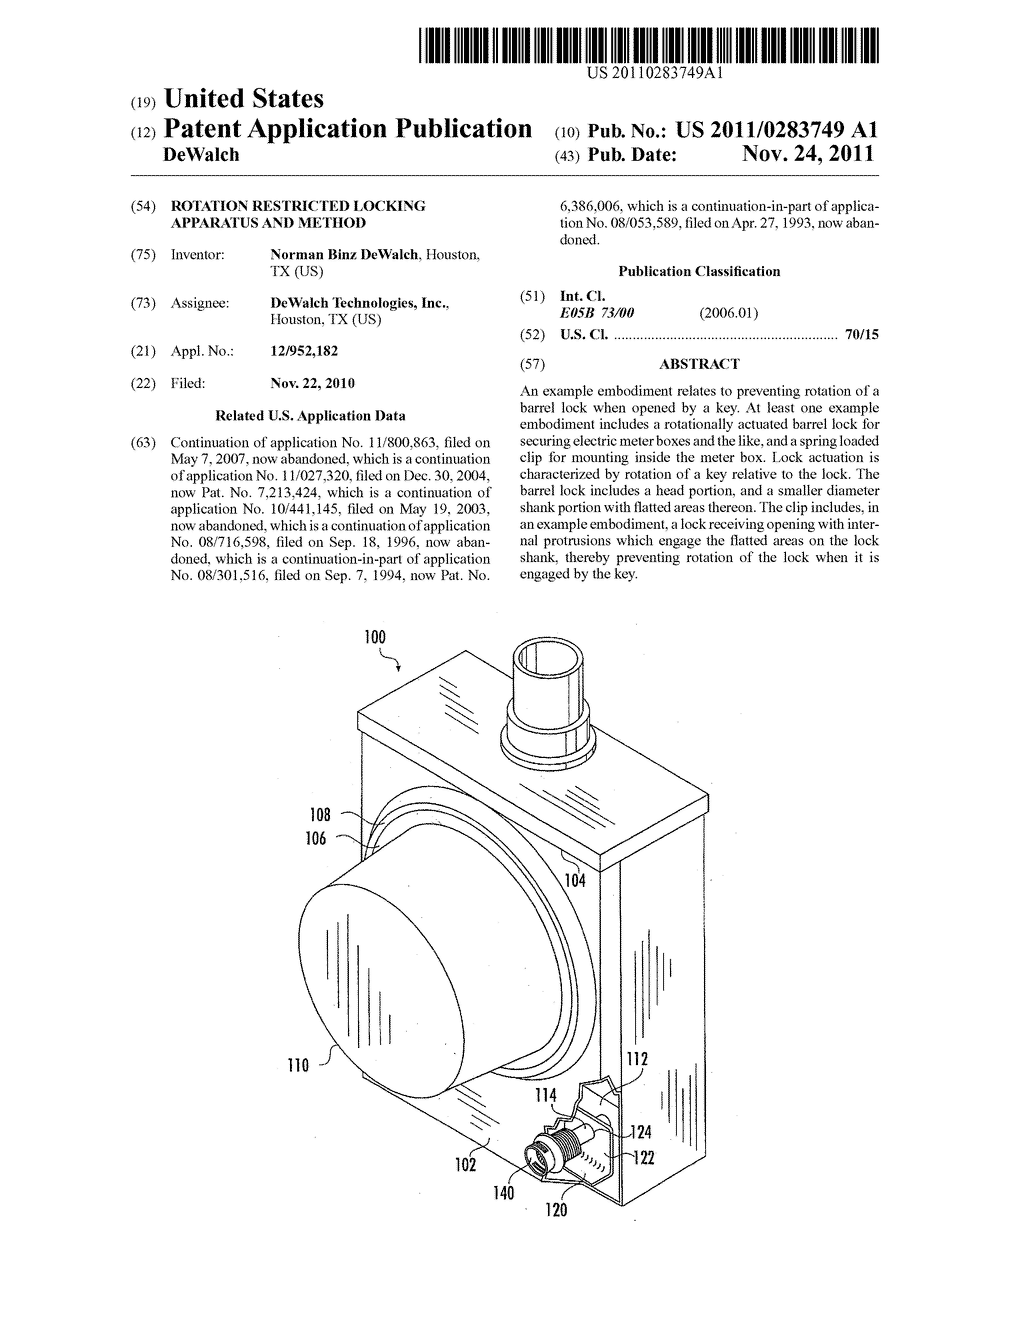 Rotation Restricted Locking Apparatus and Method - diagram, schematic, and image 01